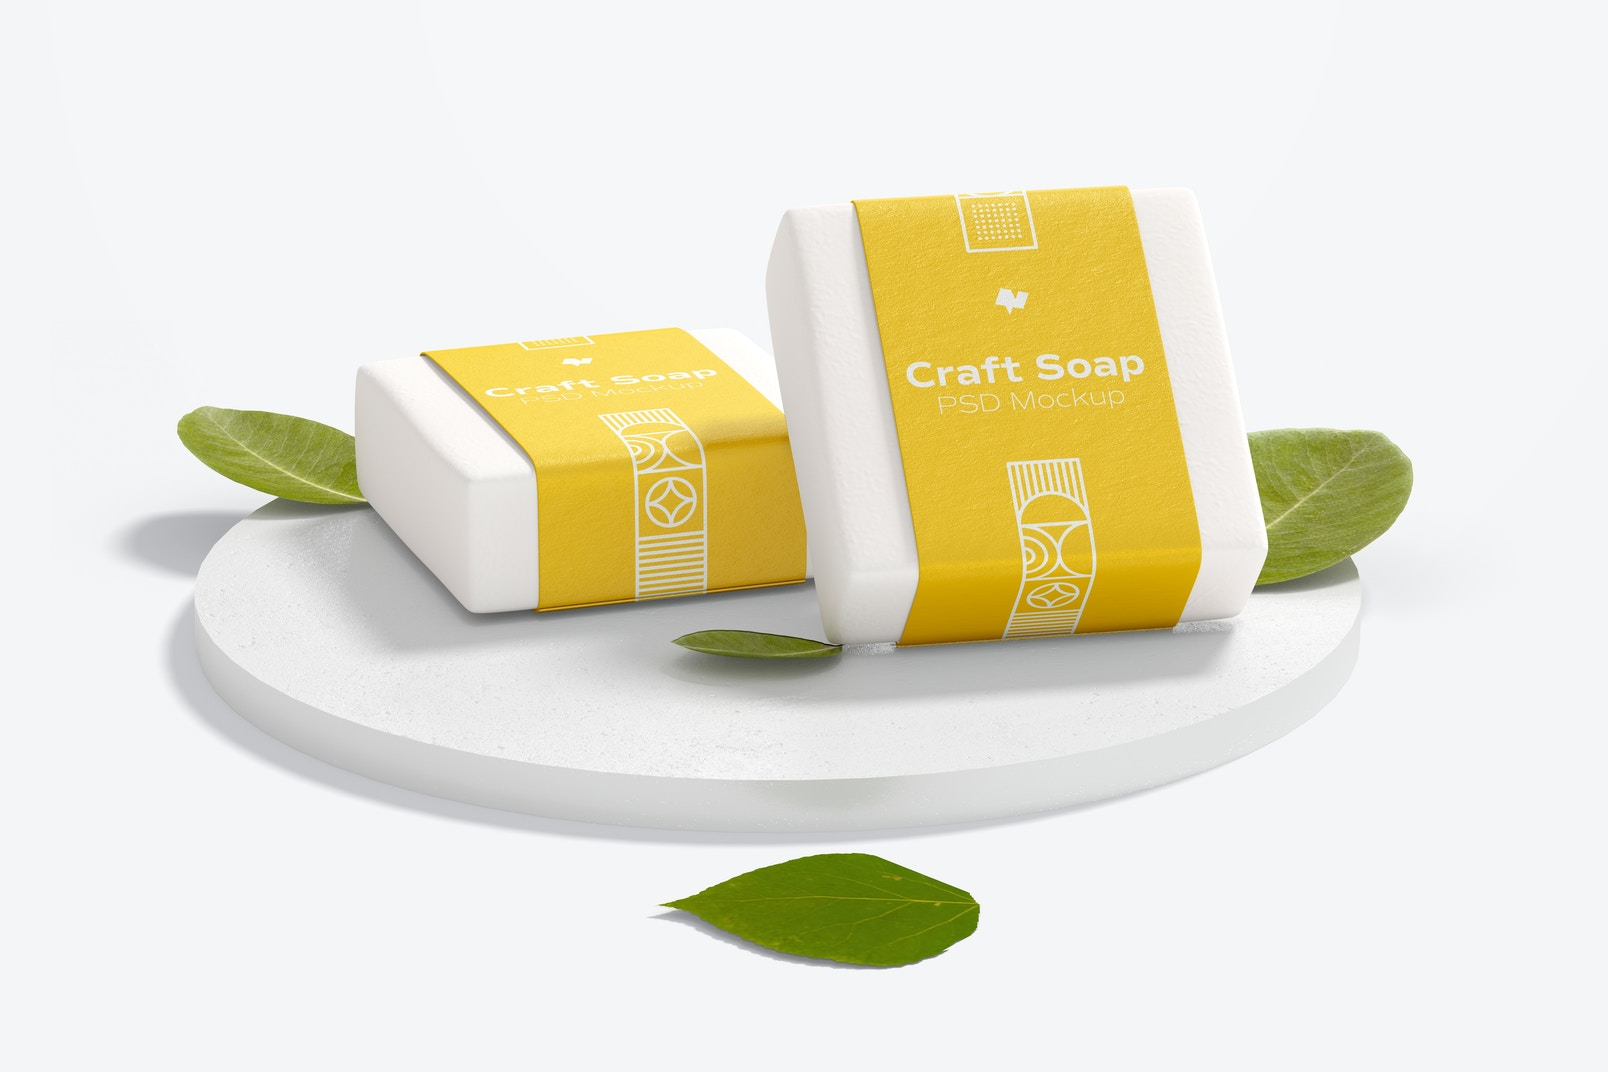 Craft Soaps with Label Mockup with Round Stone Stand